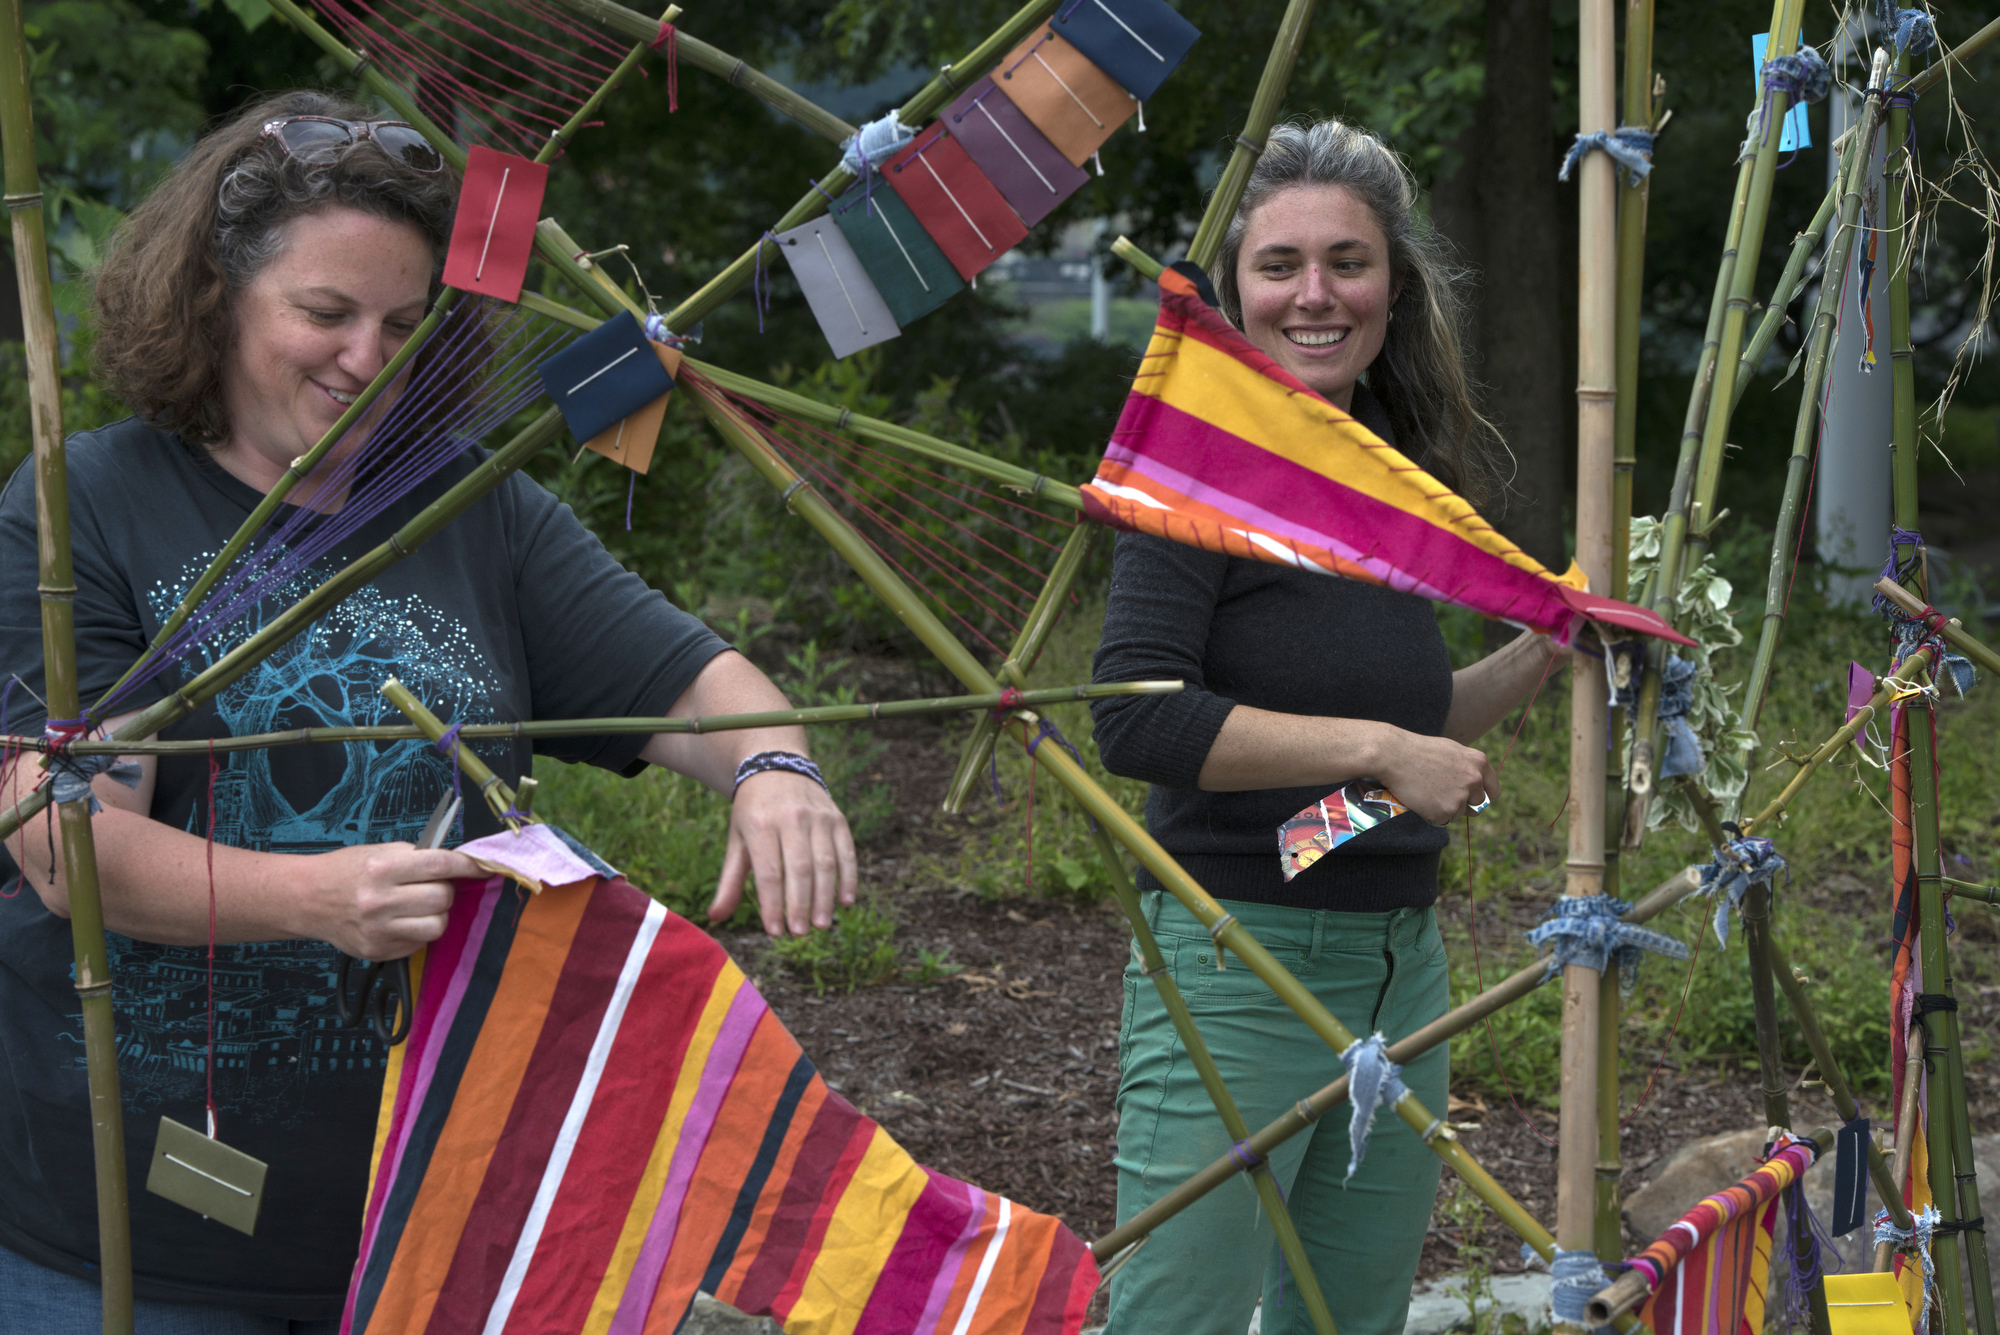 """Assisting artists Jenn Benchak (left) and Jenn Myers (right) add material to Rose Clancy's sculpture """"Diversion"""" at Point State Park."""